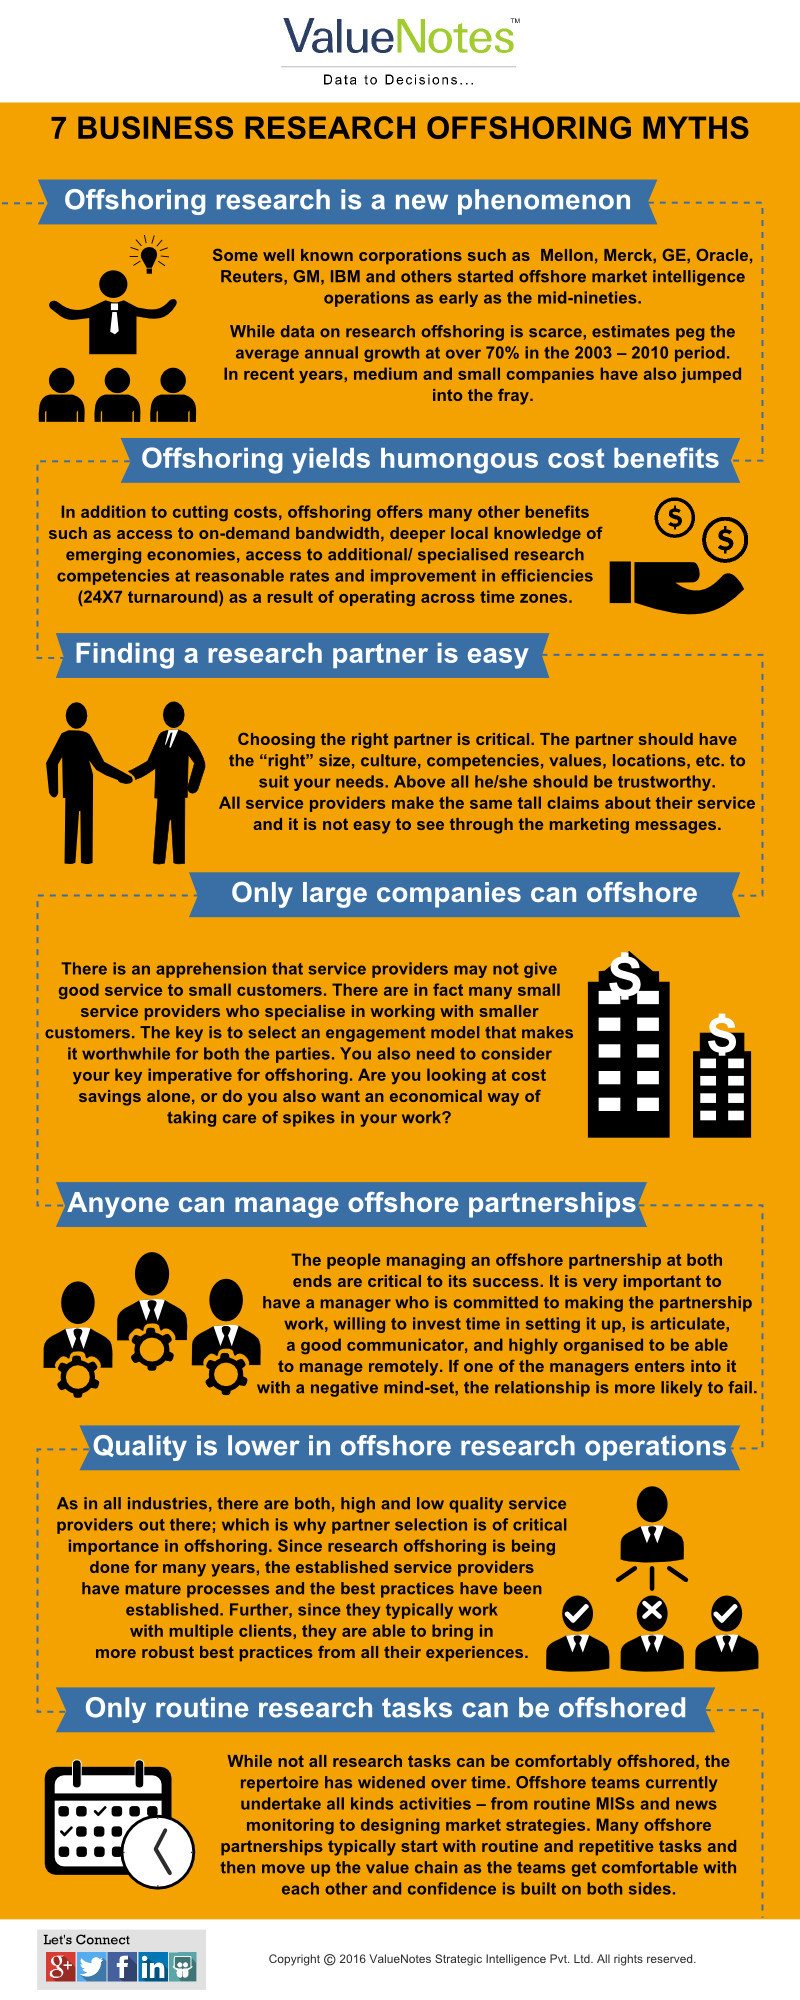 01_7 BUSINESS RESEARCH OFF-SHORING MYTHS